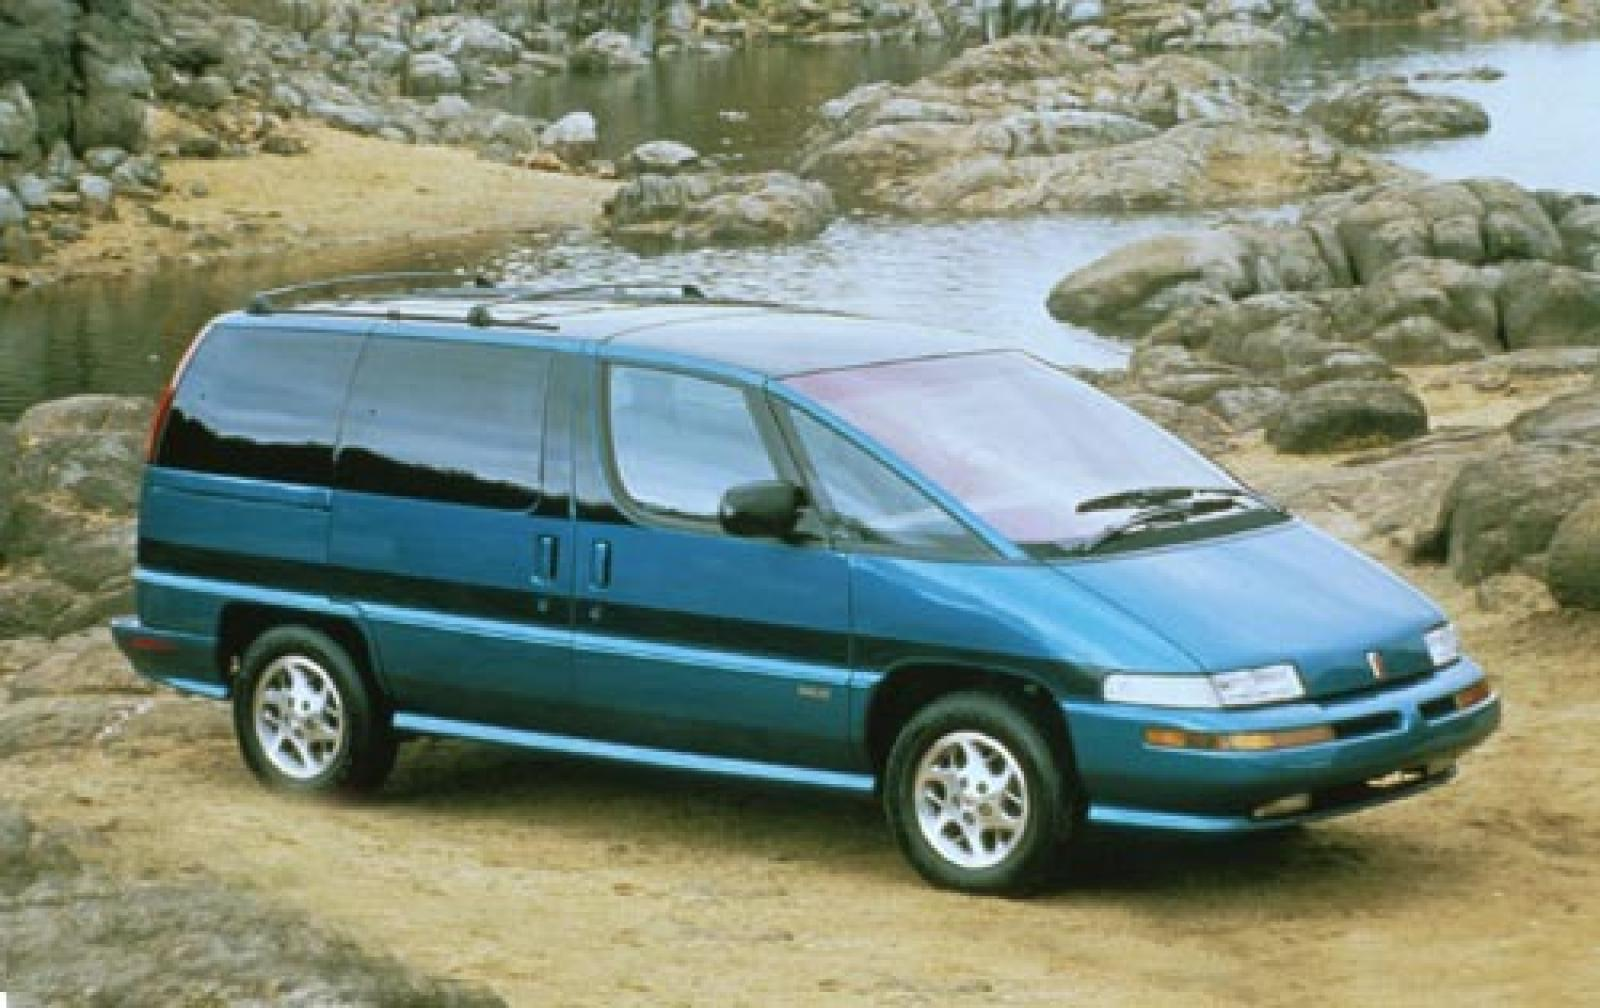 1996 Oldsmobile Silhouette Green 200 Interior And